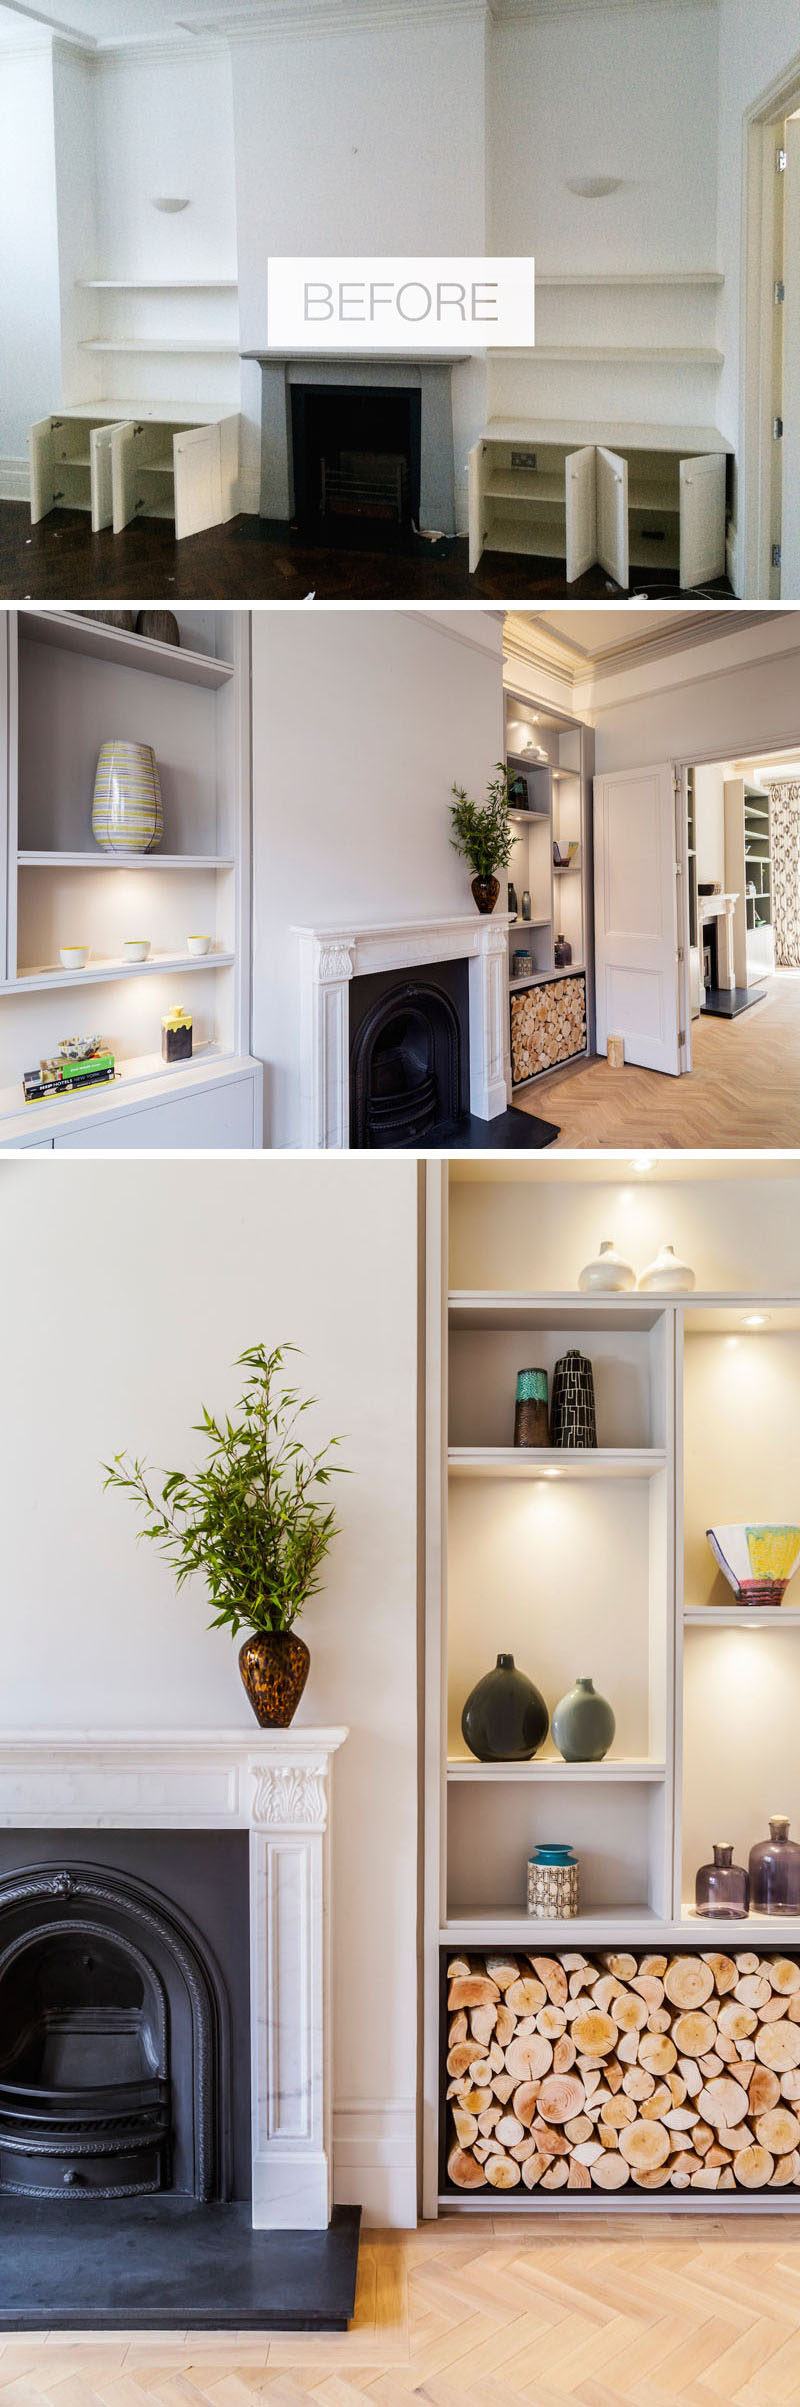 On the main floor of this refurbished house, there's two connecting reception rooms that were updated with bespoke joinery, light greyed oak parquet floors and traditional white marble fireplaces, one of which has a wood burning stove installed. #RenovatedInterior #InteriorDesign #Shelving #Fireplace